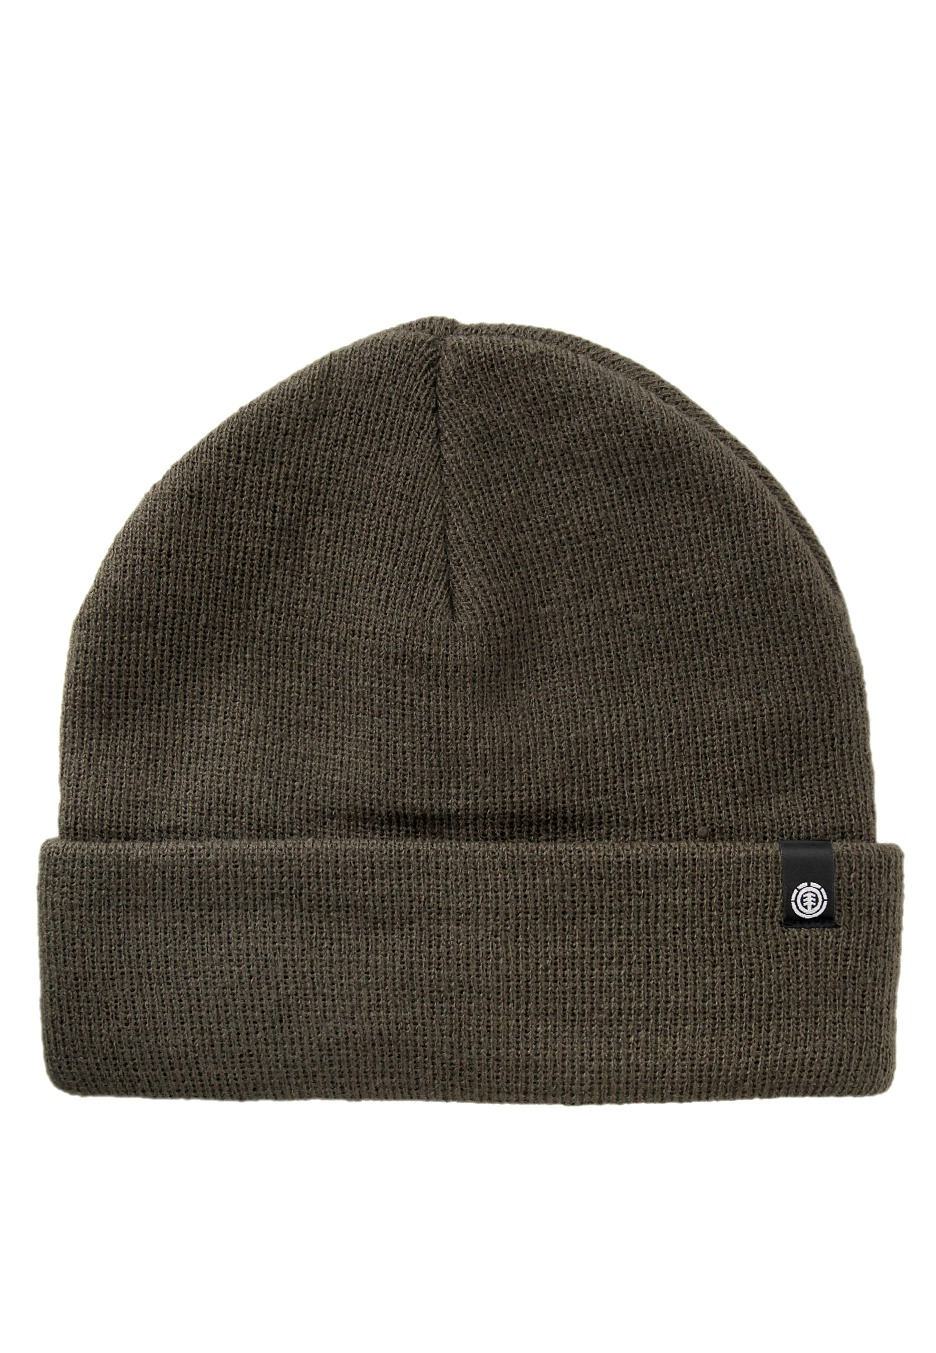 3155b4d71fd Element - Carrier Military Green - Beanie - Impericon.com UK